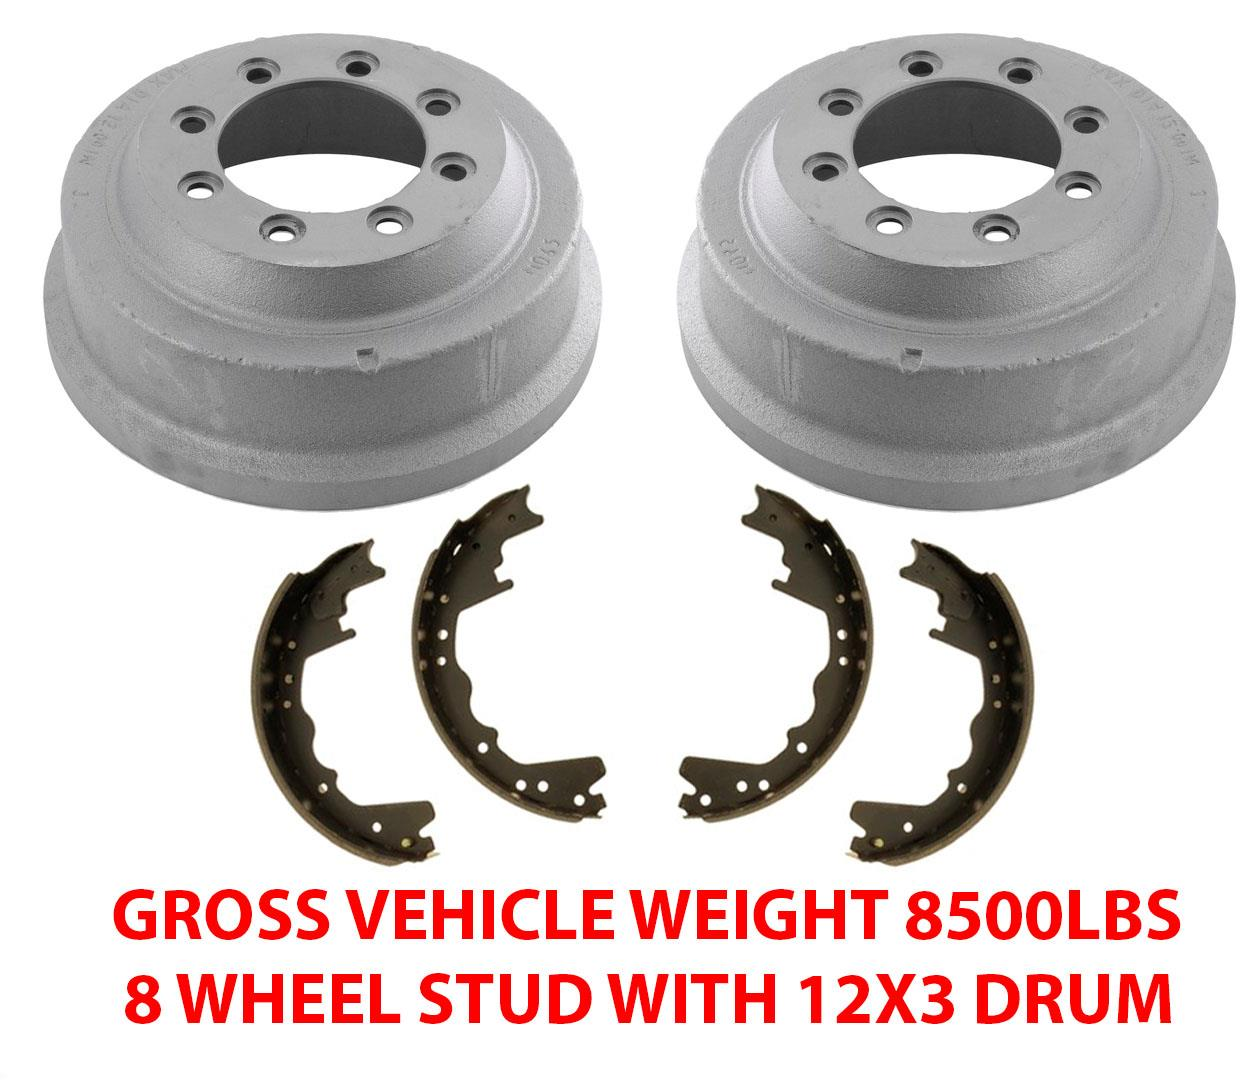 Details About Fits 85 98 Ford F250 8500 Gvw 8 Stud 12x3 Inch Rear Brake Drums Brake Shoes